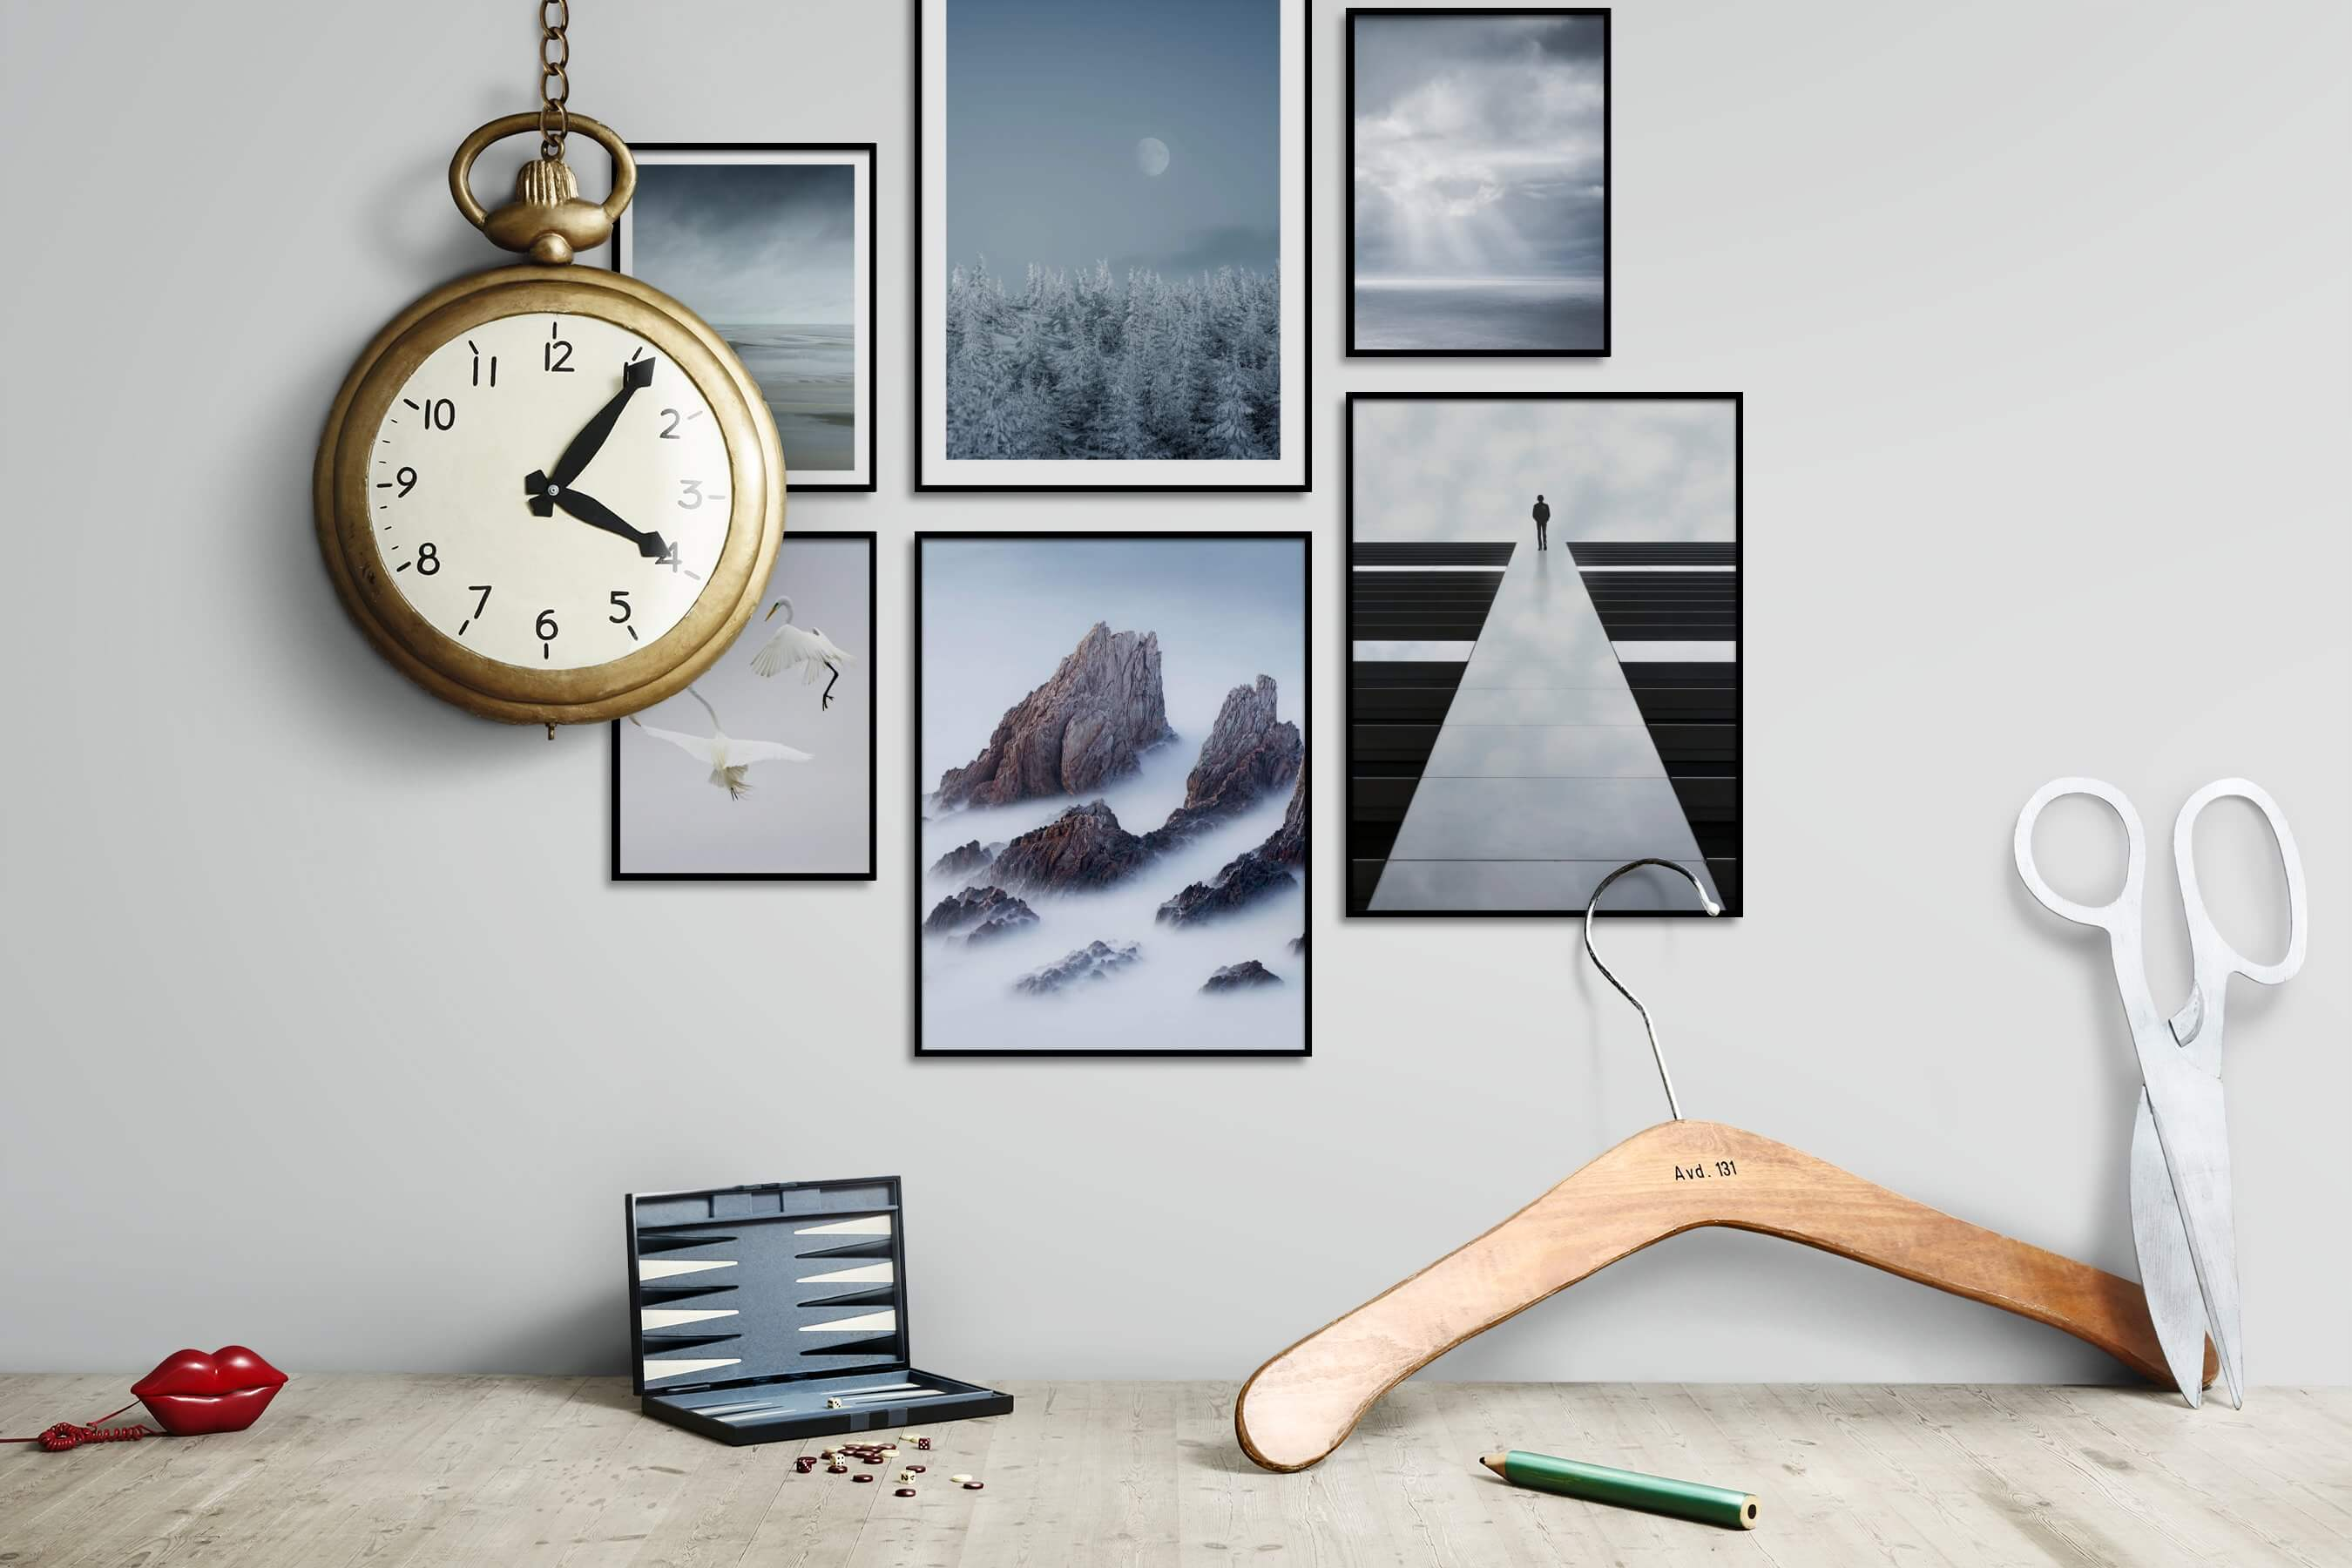 Gallery wall idea with six framed pictures arranged on a wall depicting For the Minimalist, Nature, Animals, For the Moderate, Mindfulness, and Beach & Water